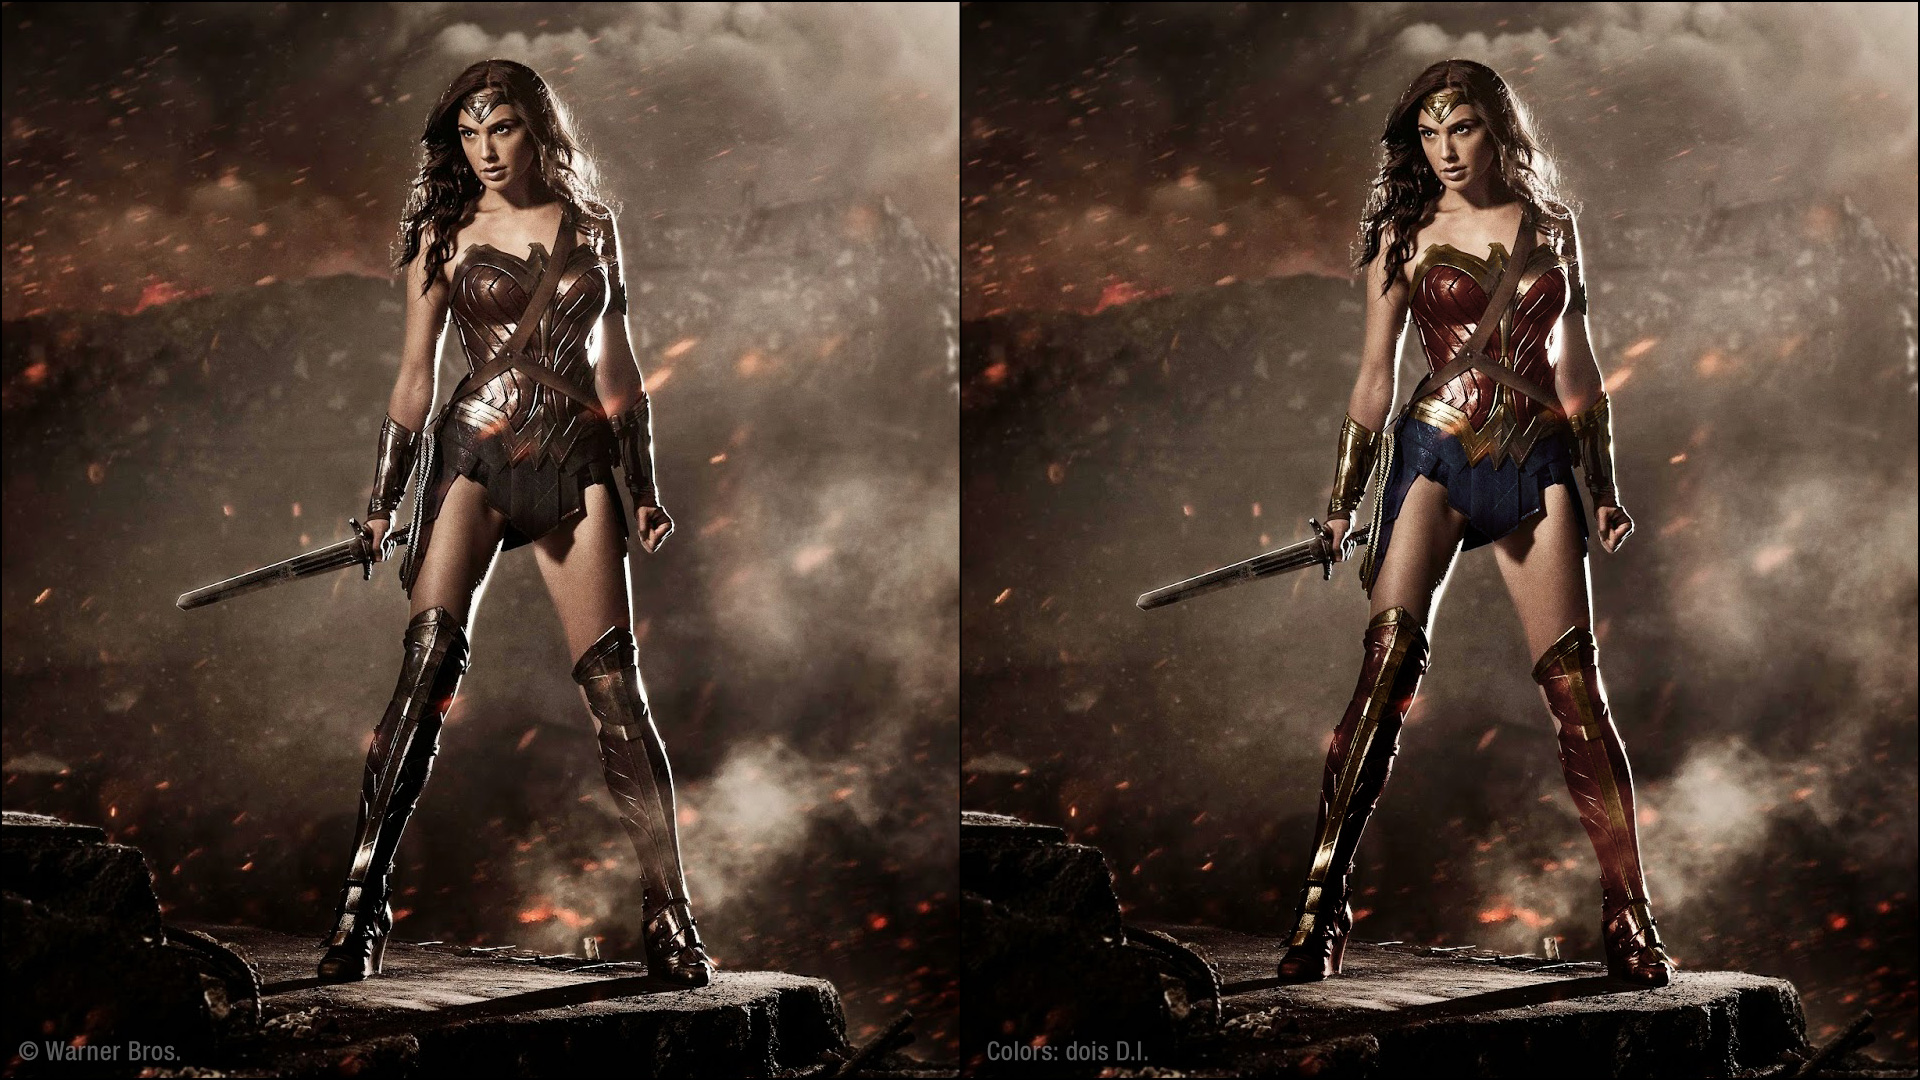 The Wonder Woman Costume Thread - Part 10 - Page 35 - The ... Gal Gadot Wonder Woman Costume Revealed